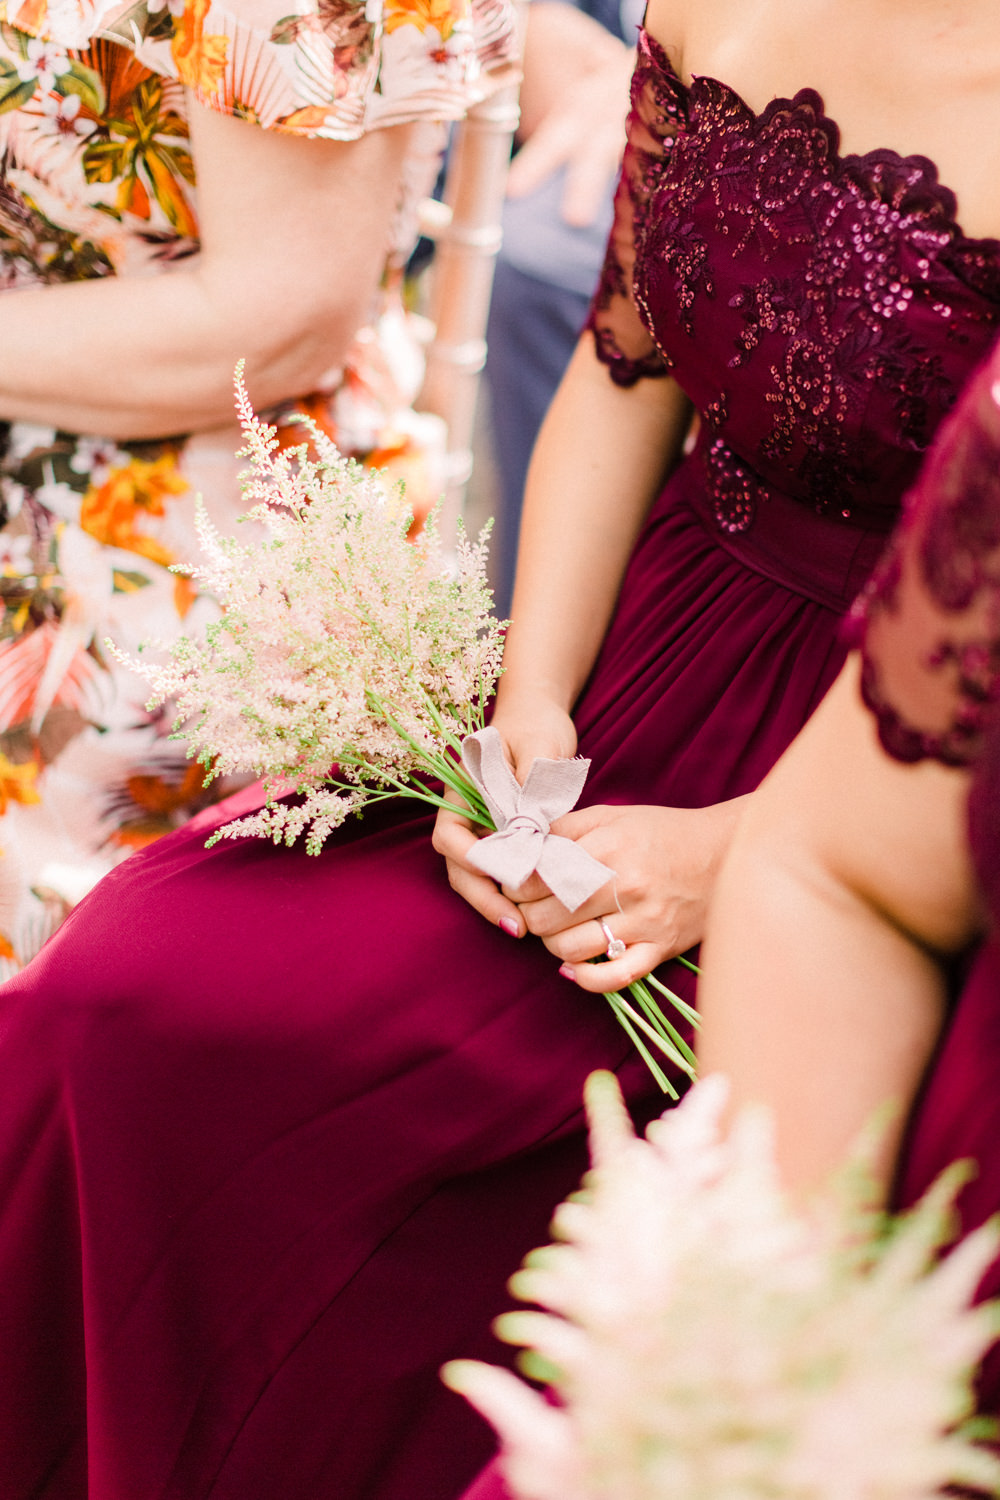 Bridesmaid Bouquet Flowers Bride Bridal Astilbe Tortworth Court Wedding Sanshine Photography